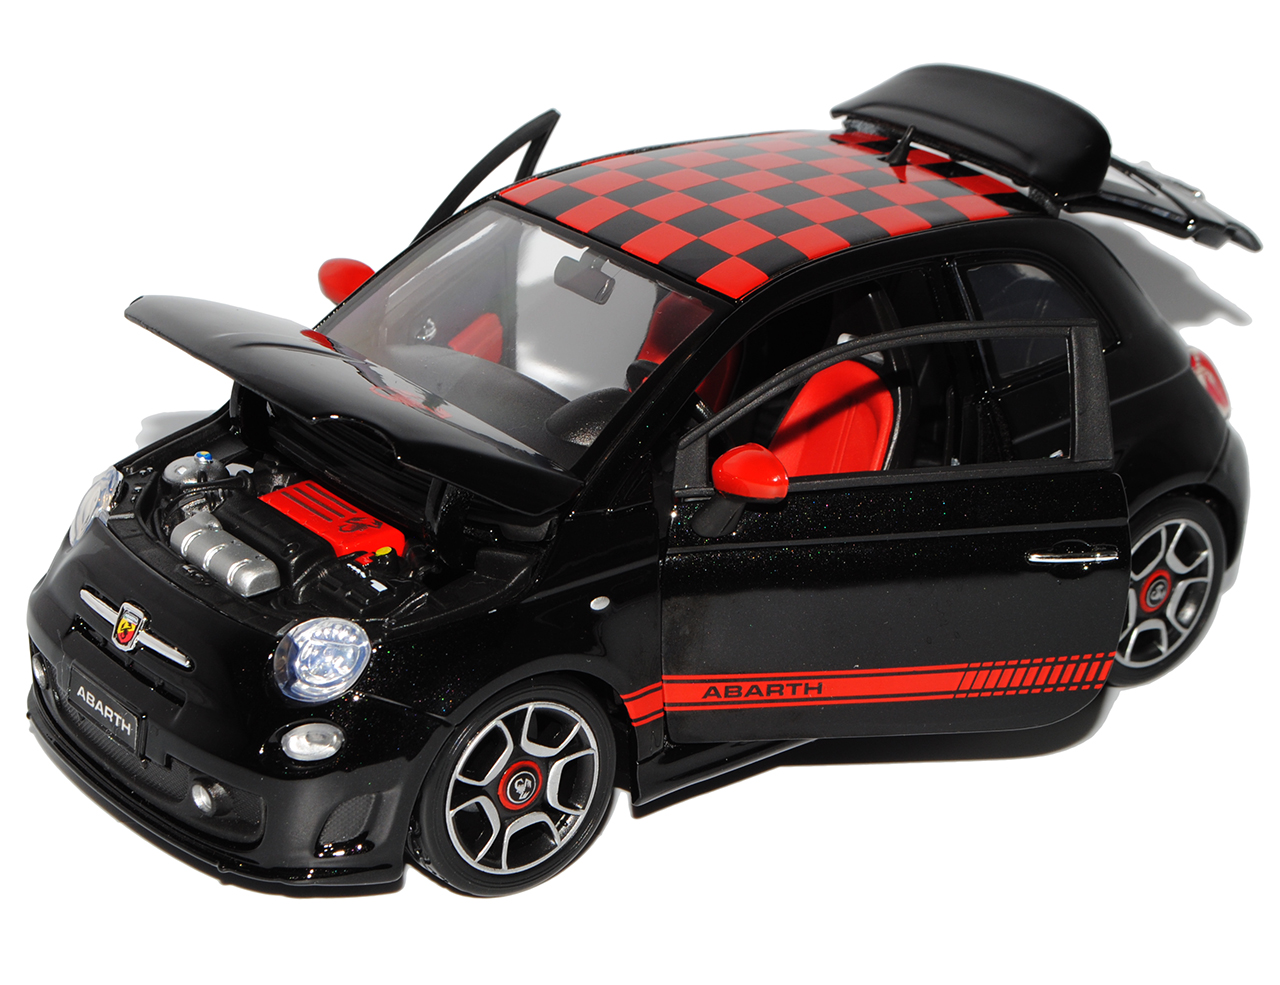 fiat 500 abarth schwarz rot karriertes dach ab 2007 1 18 bburago modell auto m ebay. Black Bedroom Furniture Sets. Home Design Ideas